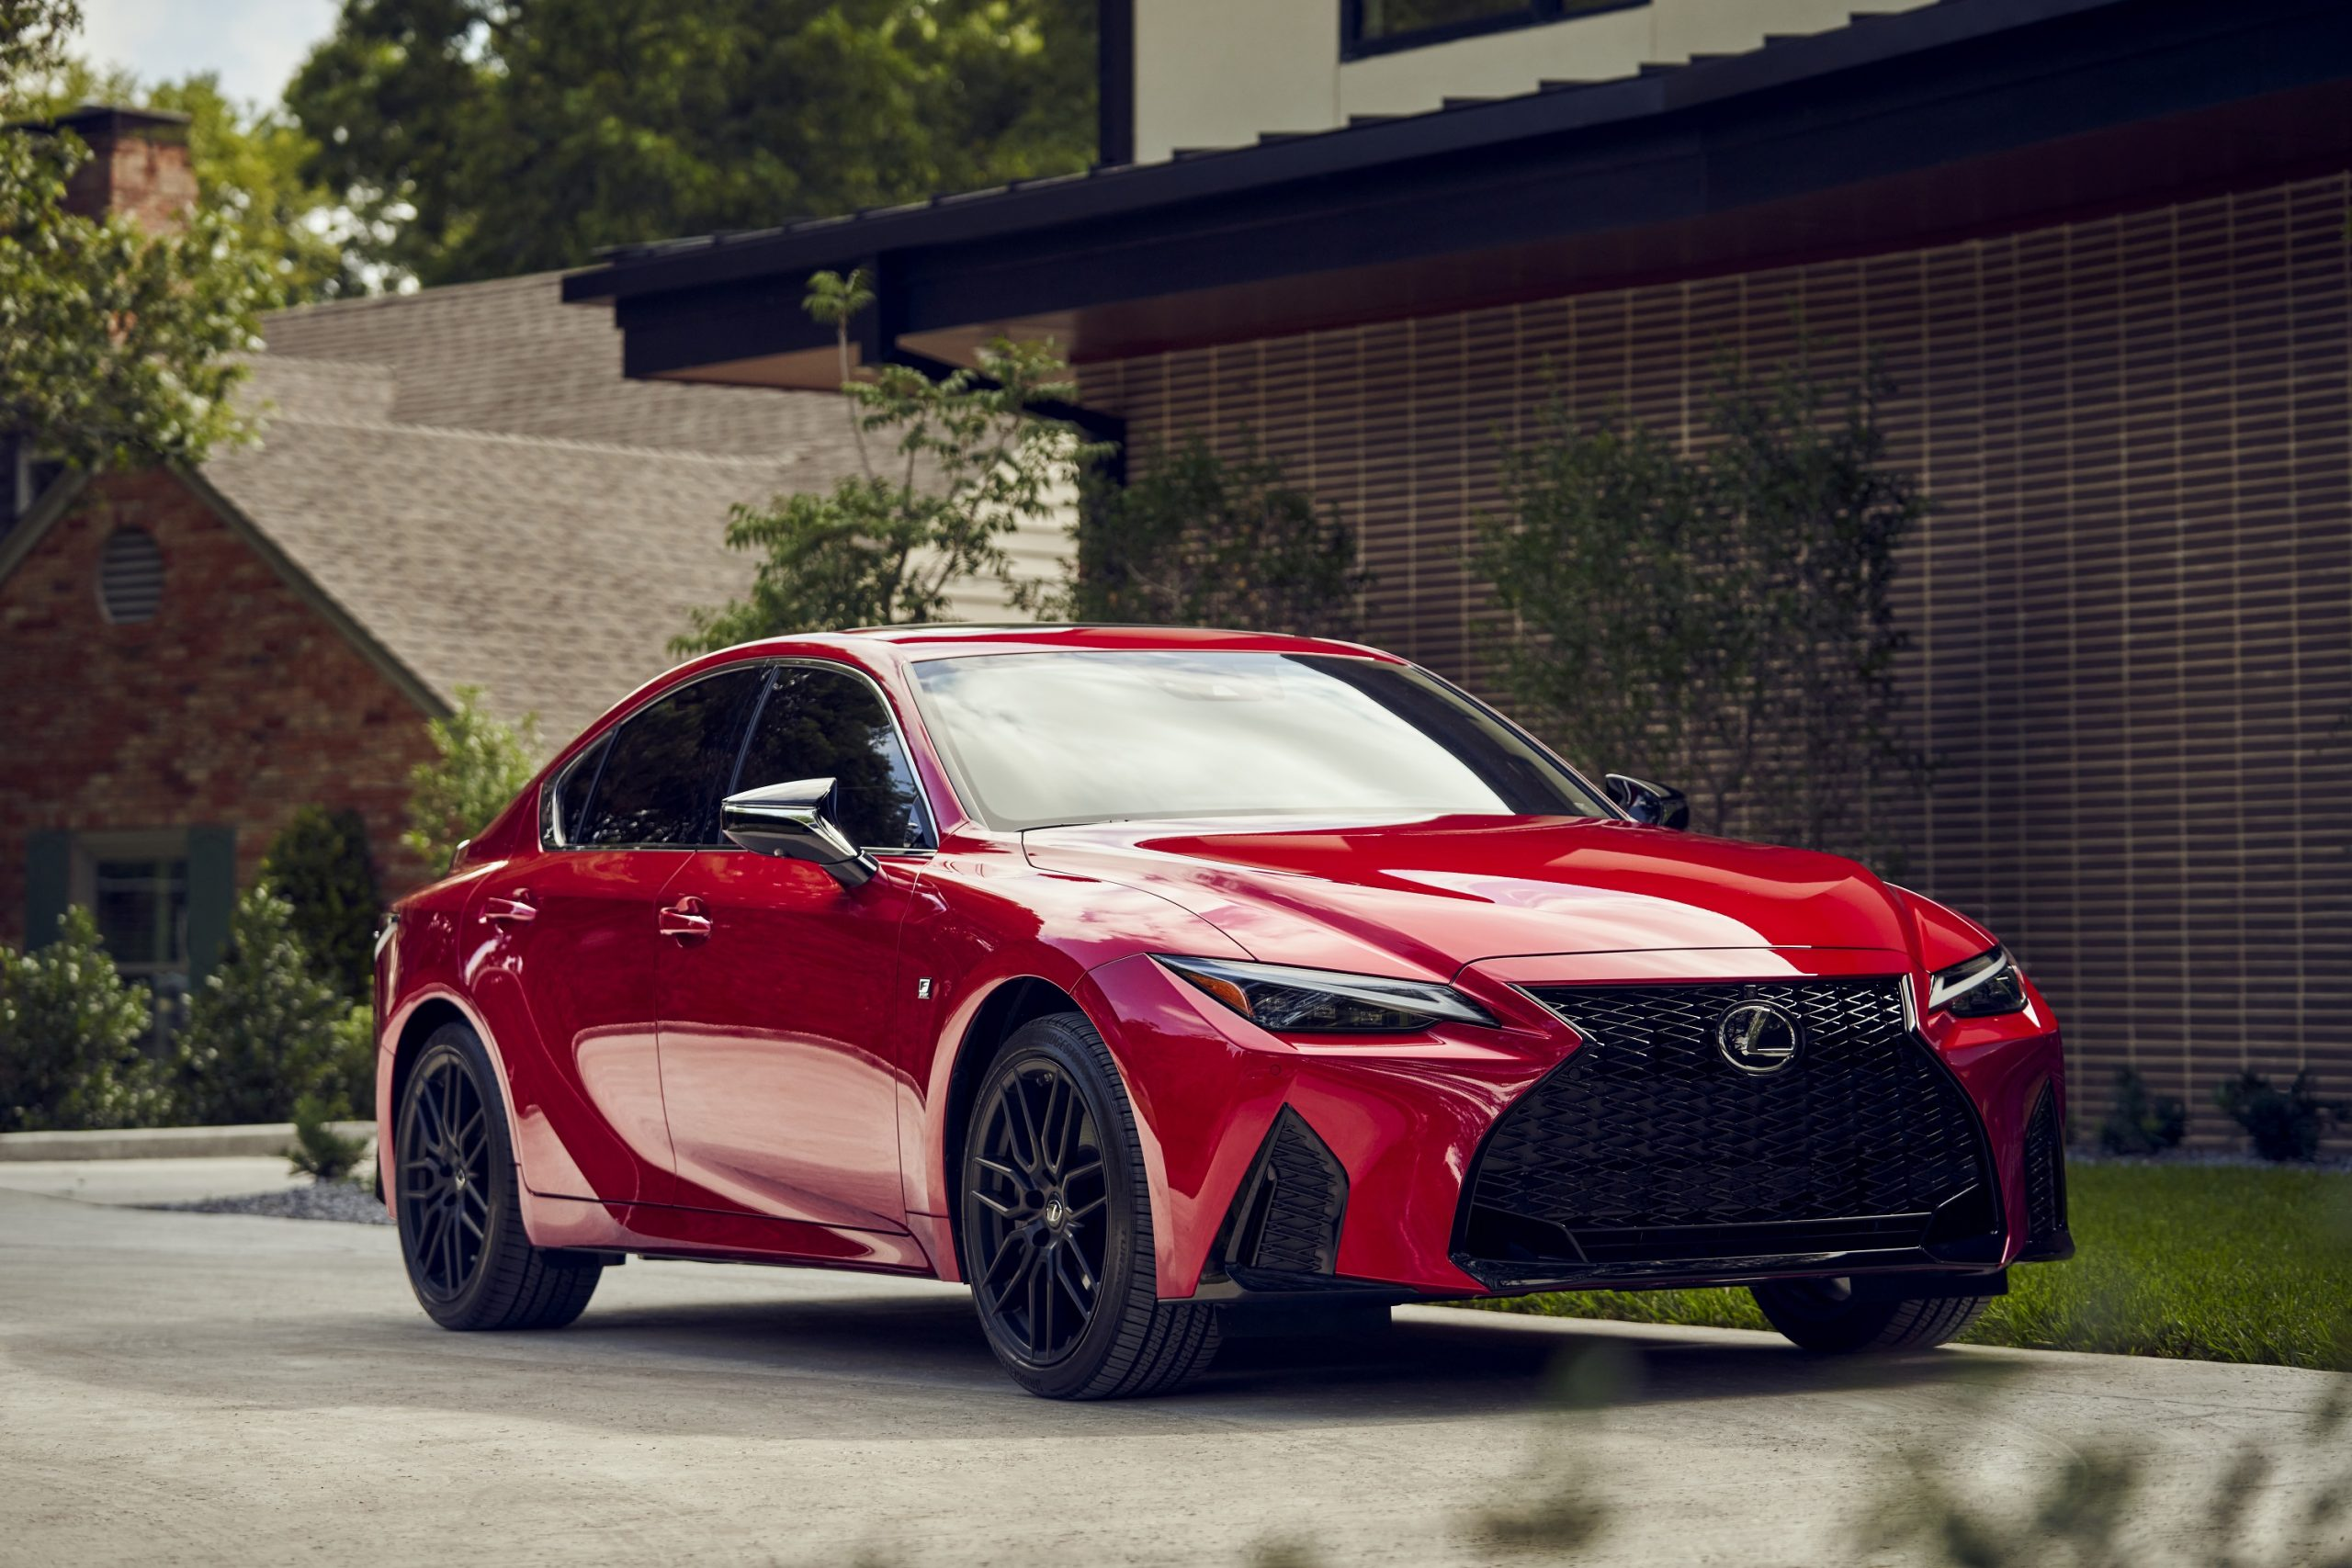 A red Lexus IS F-Sport shot from the front 3/4 in a residential area